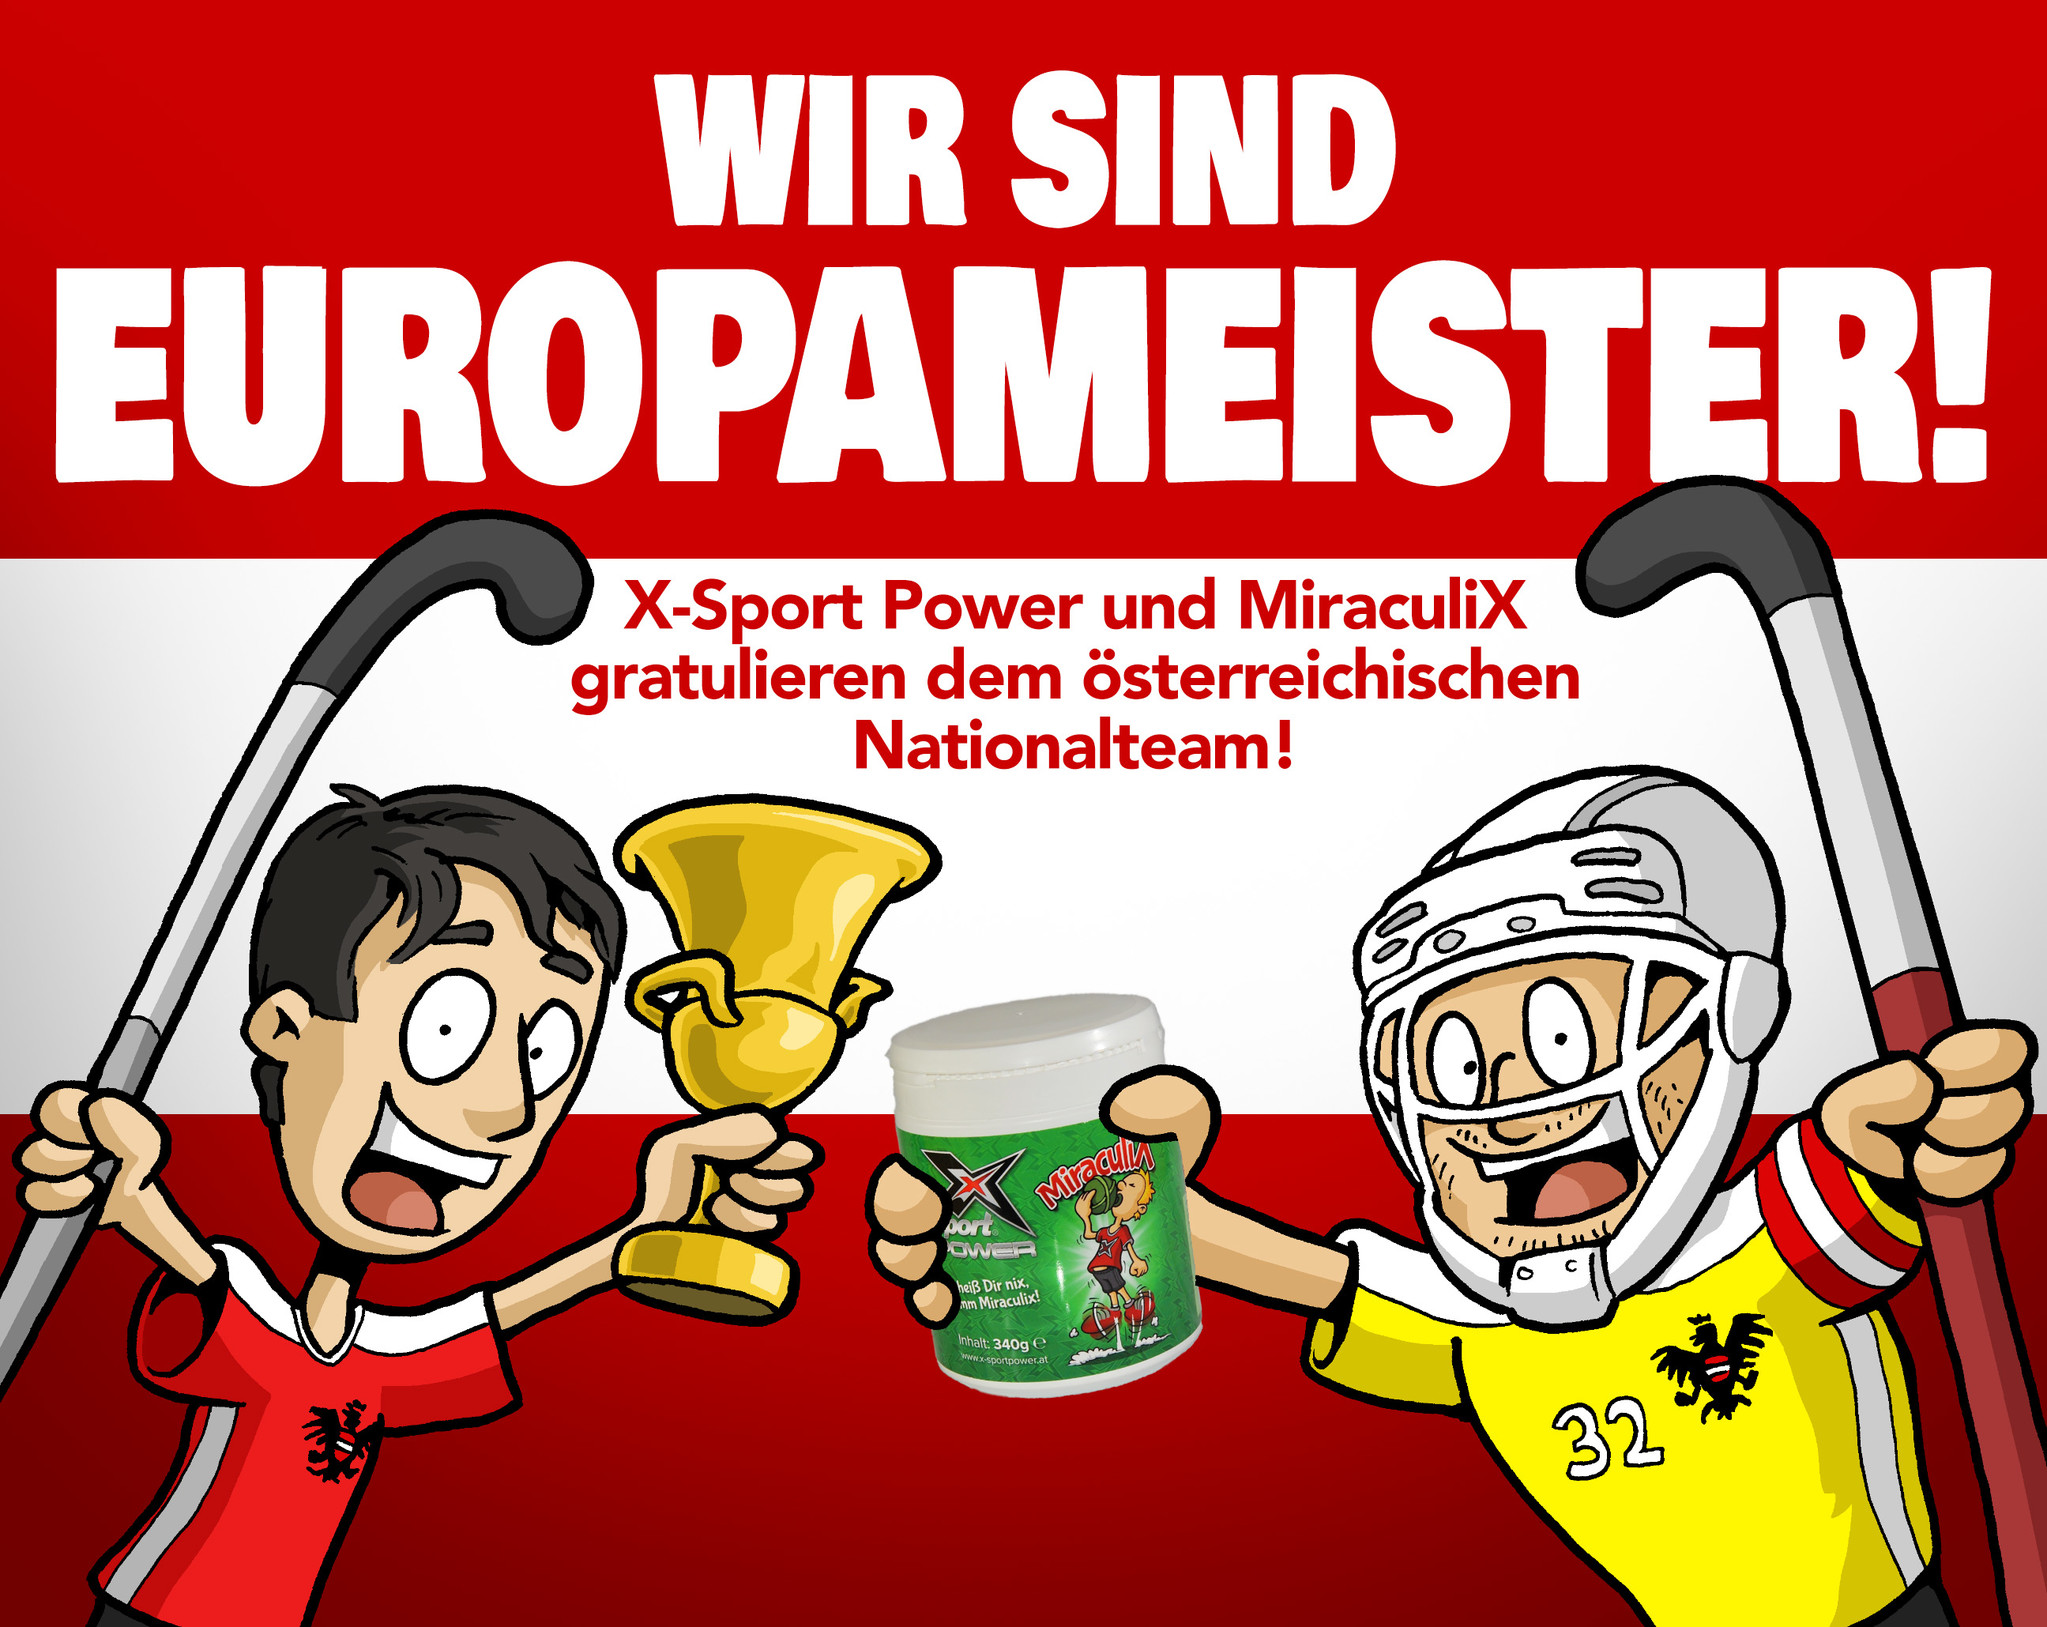 Wir sind Europameister